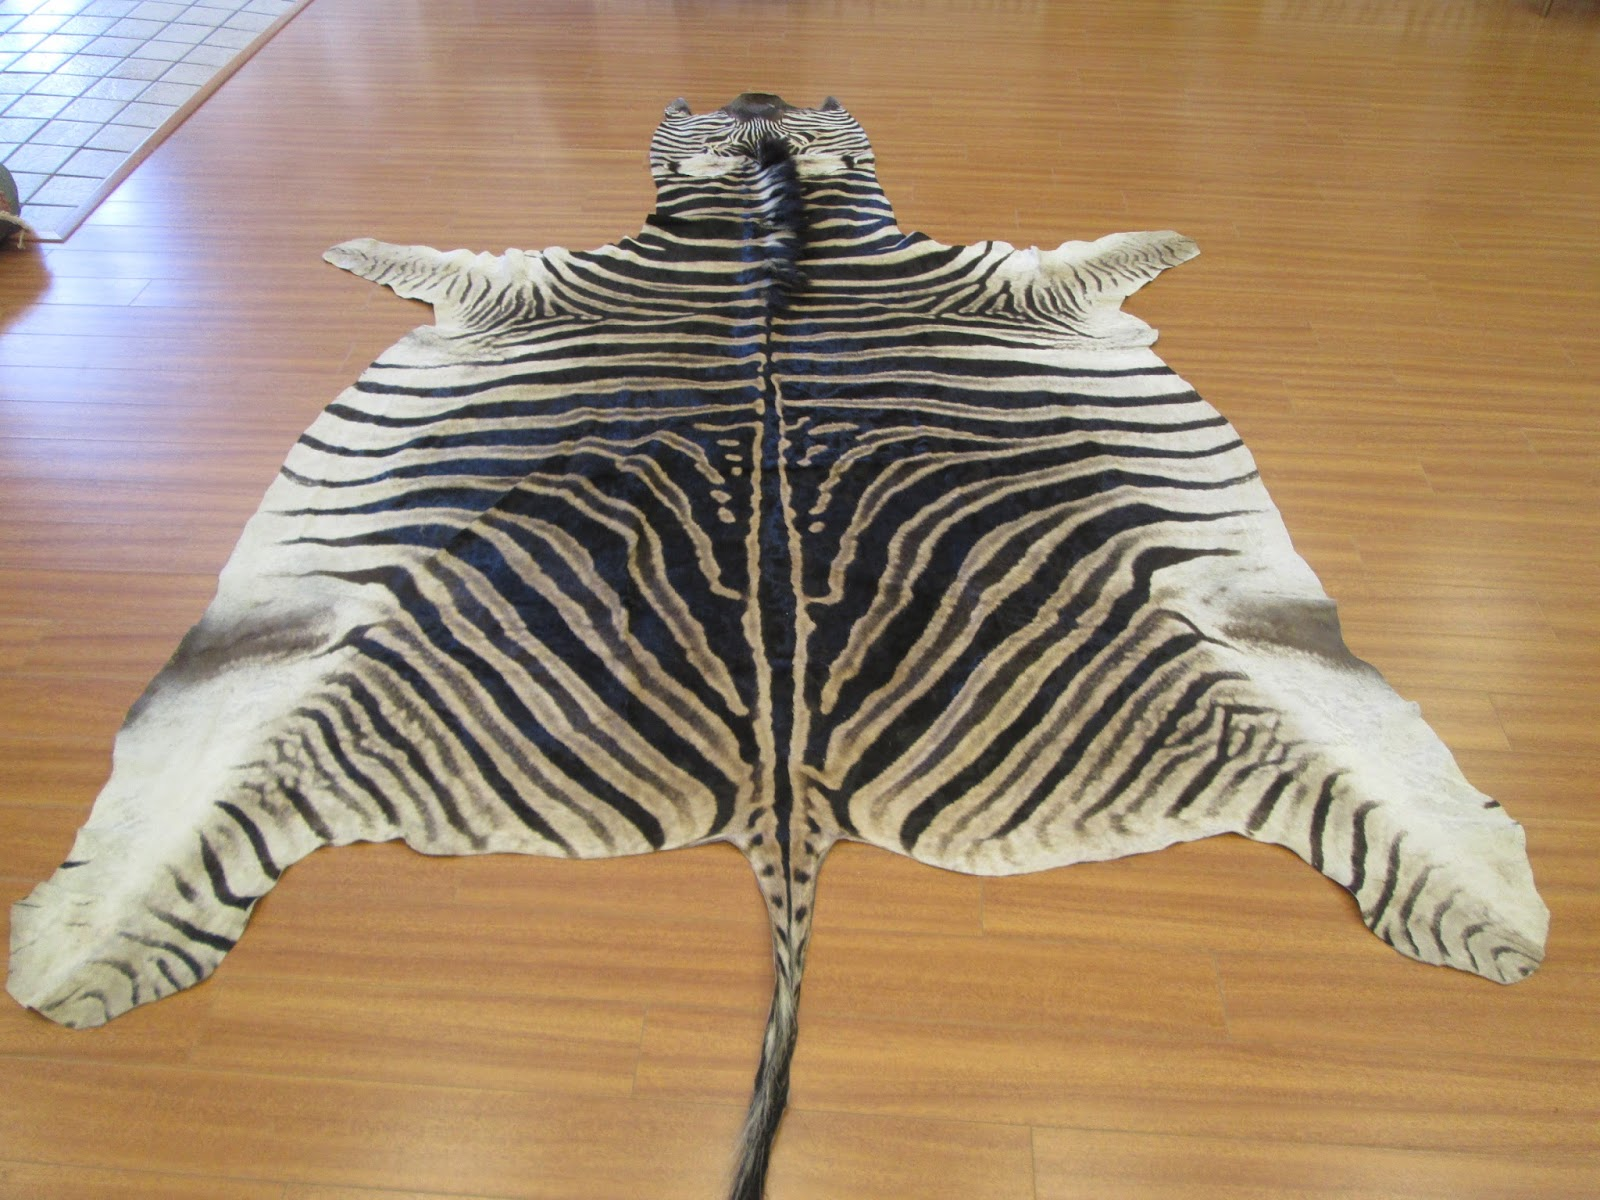 Few Days Ago We Received This Real African Zebra Skin For Cleaning Client Also Wanted To Have Backing Put More Weight On It So Stays Flat